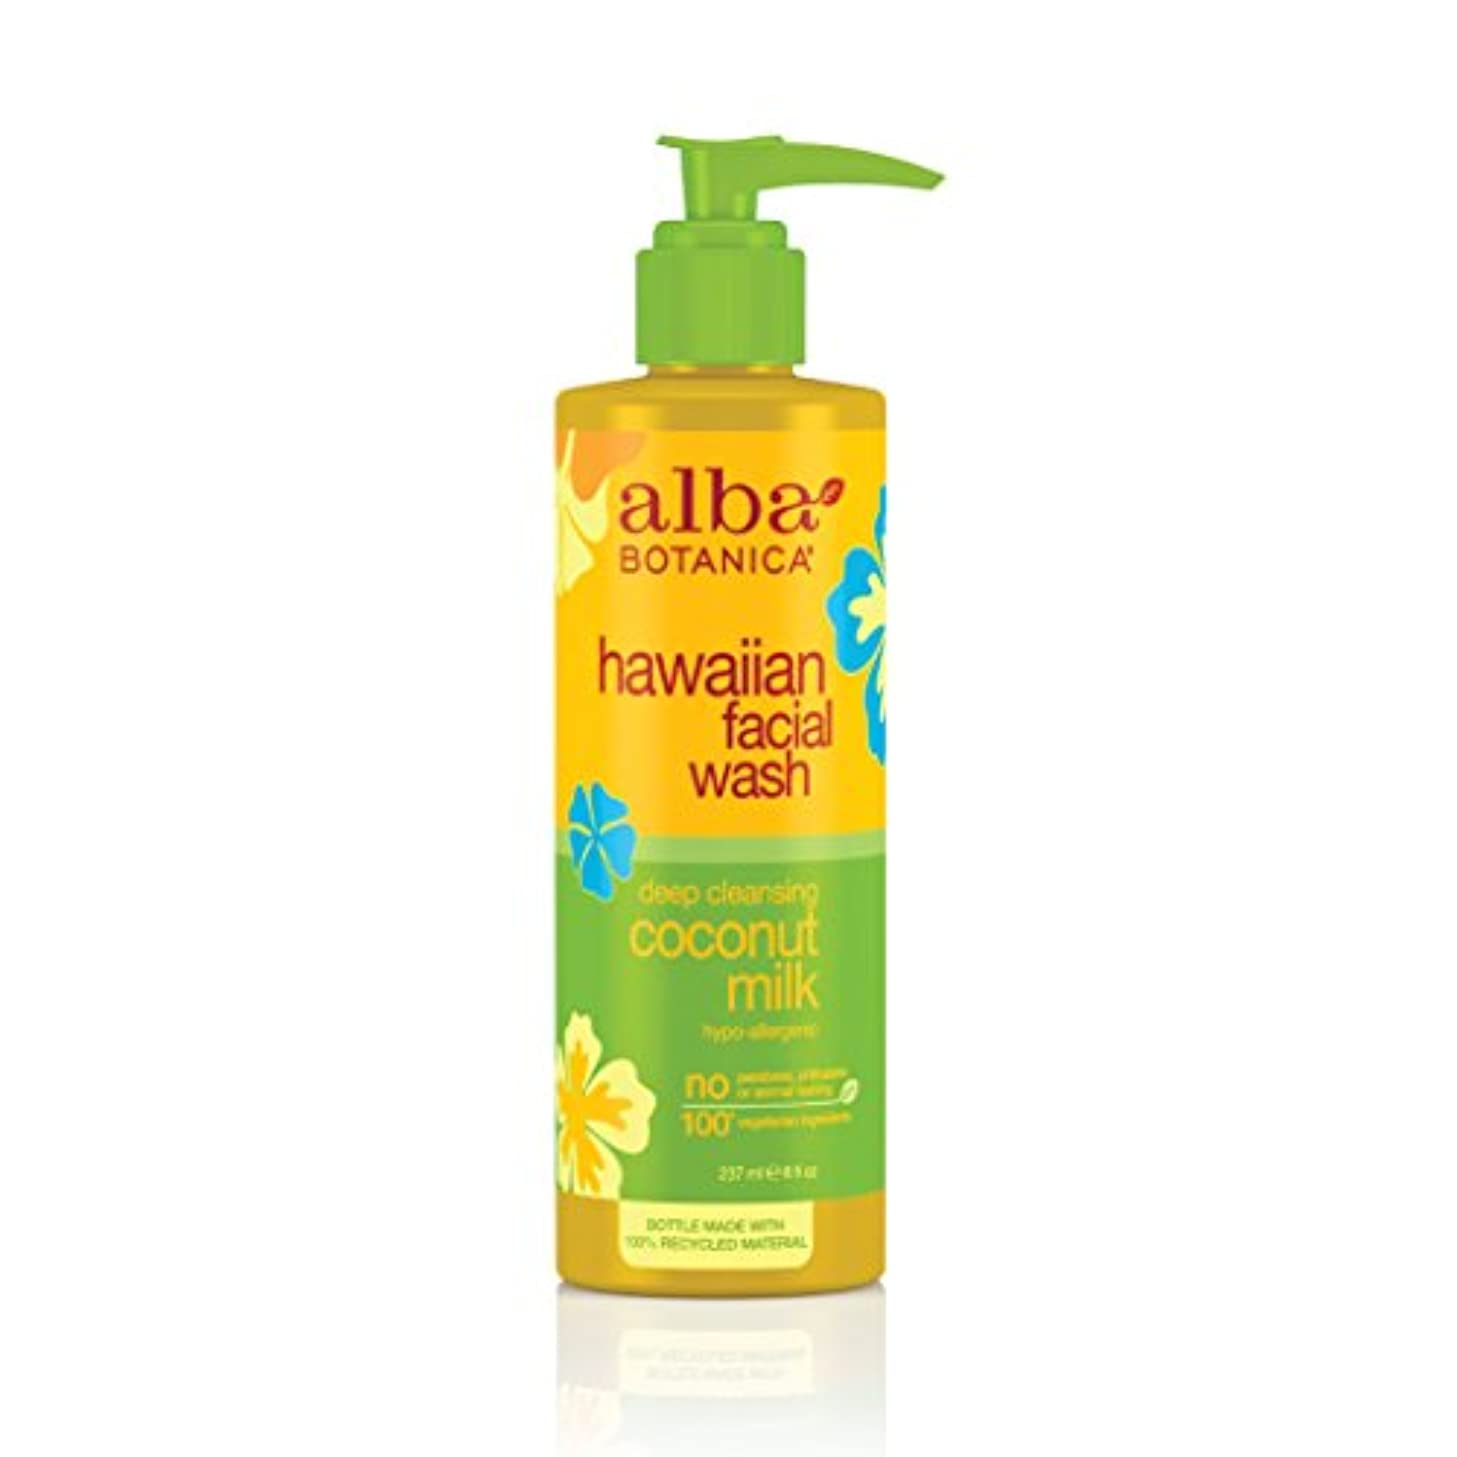 Alba Botanica Coconut Milk Facial Wash 235 ml (並行輸入品)